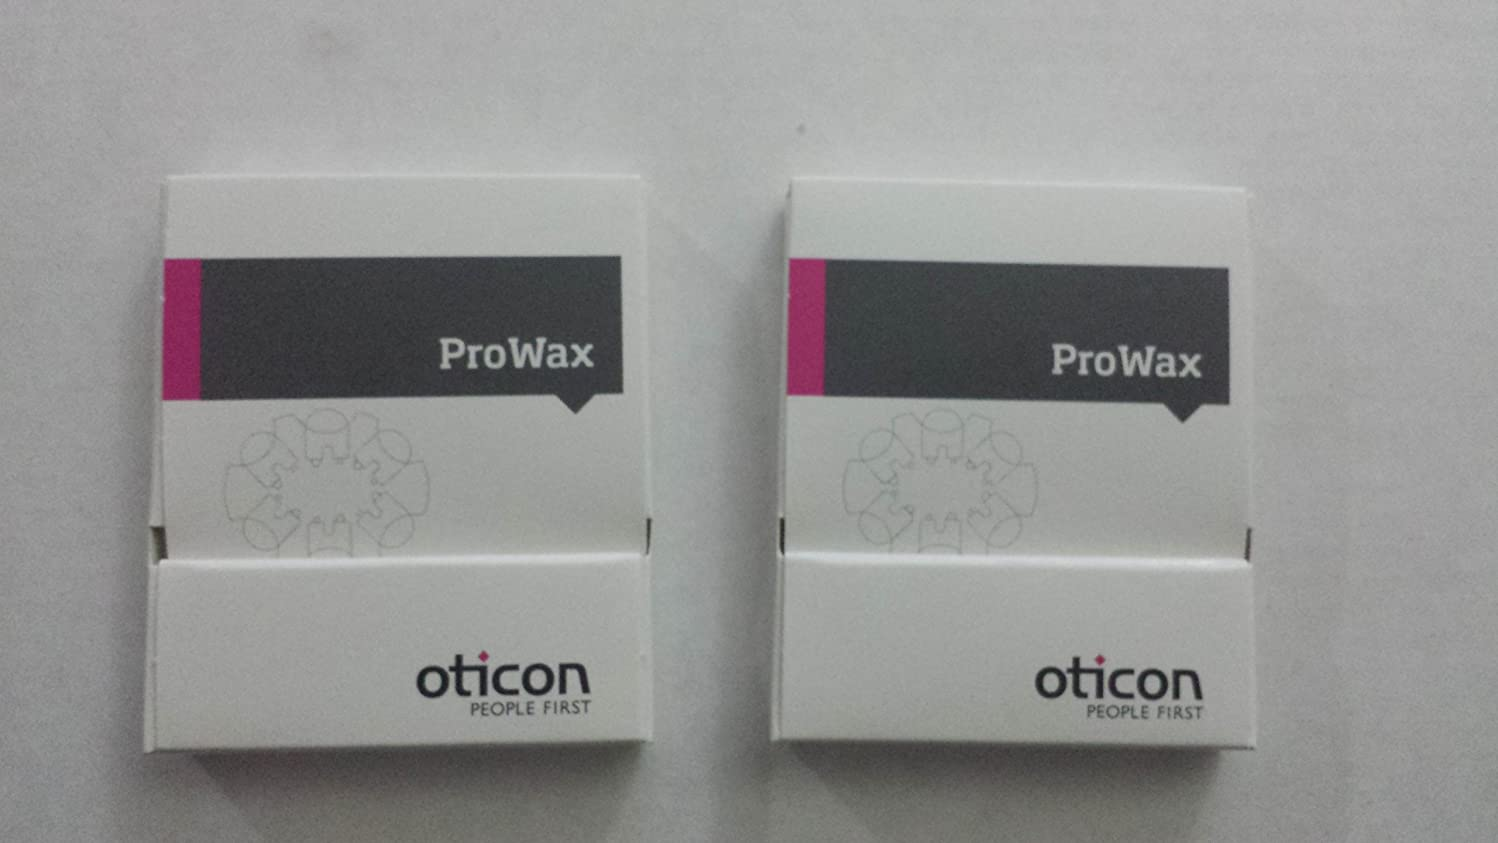 (2 packs) of Oticon ProWax